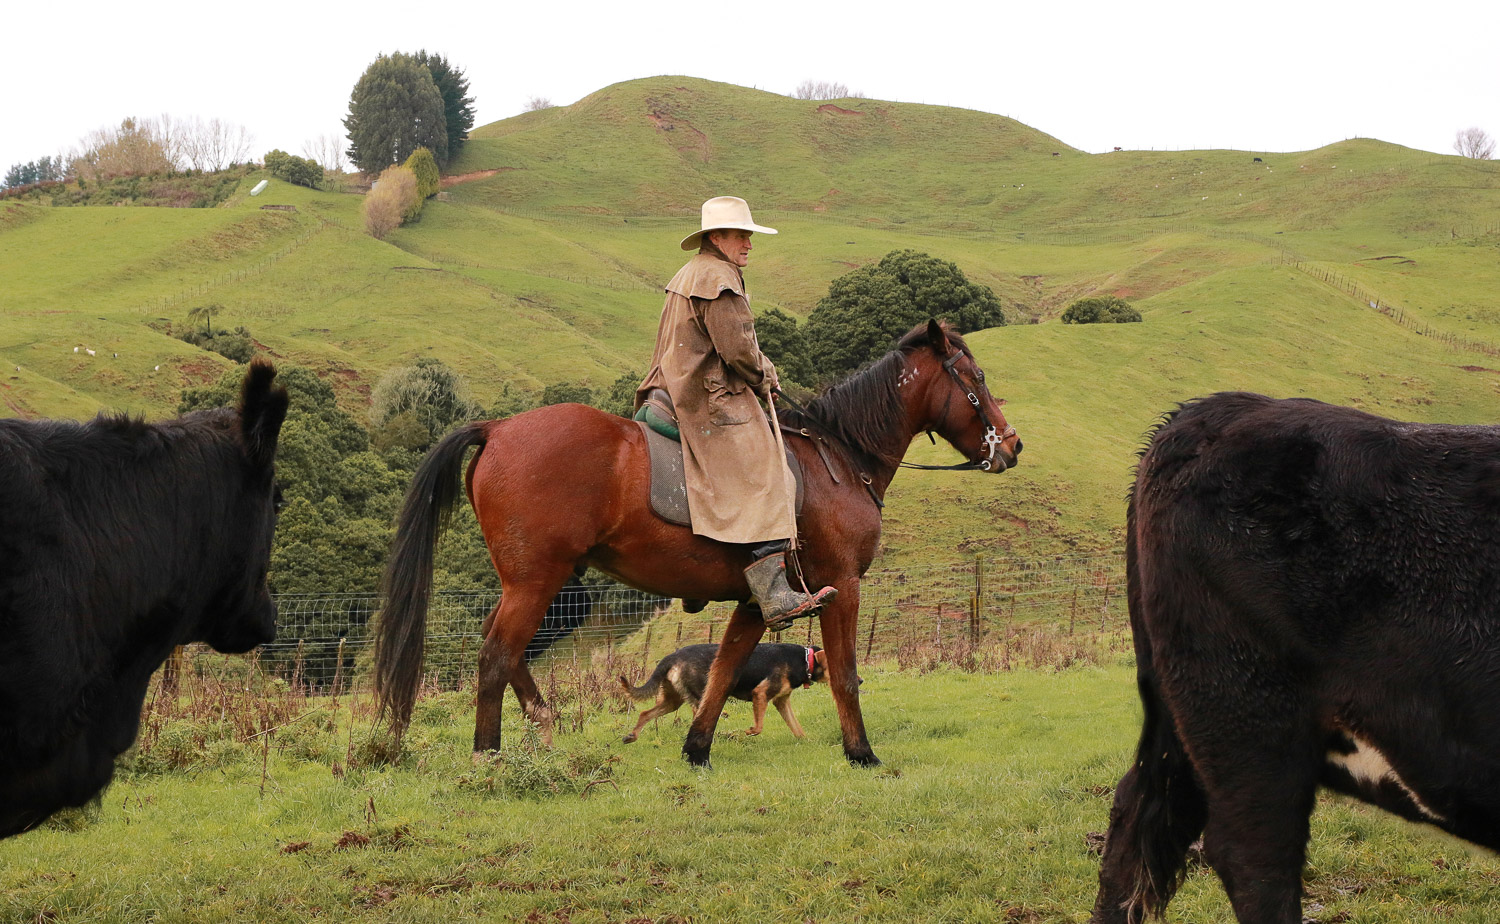 farmer-on-horse-moving-cattle-in-rain.jpg